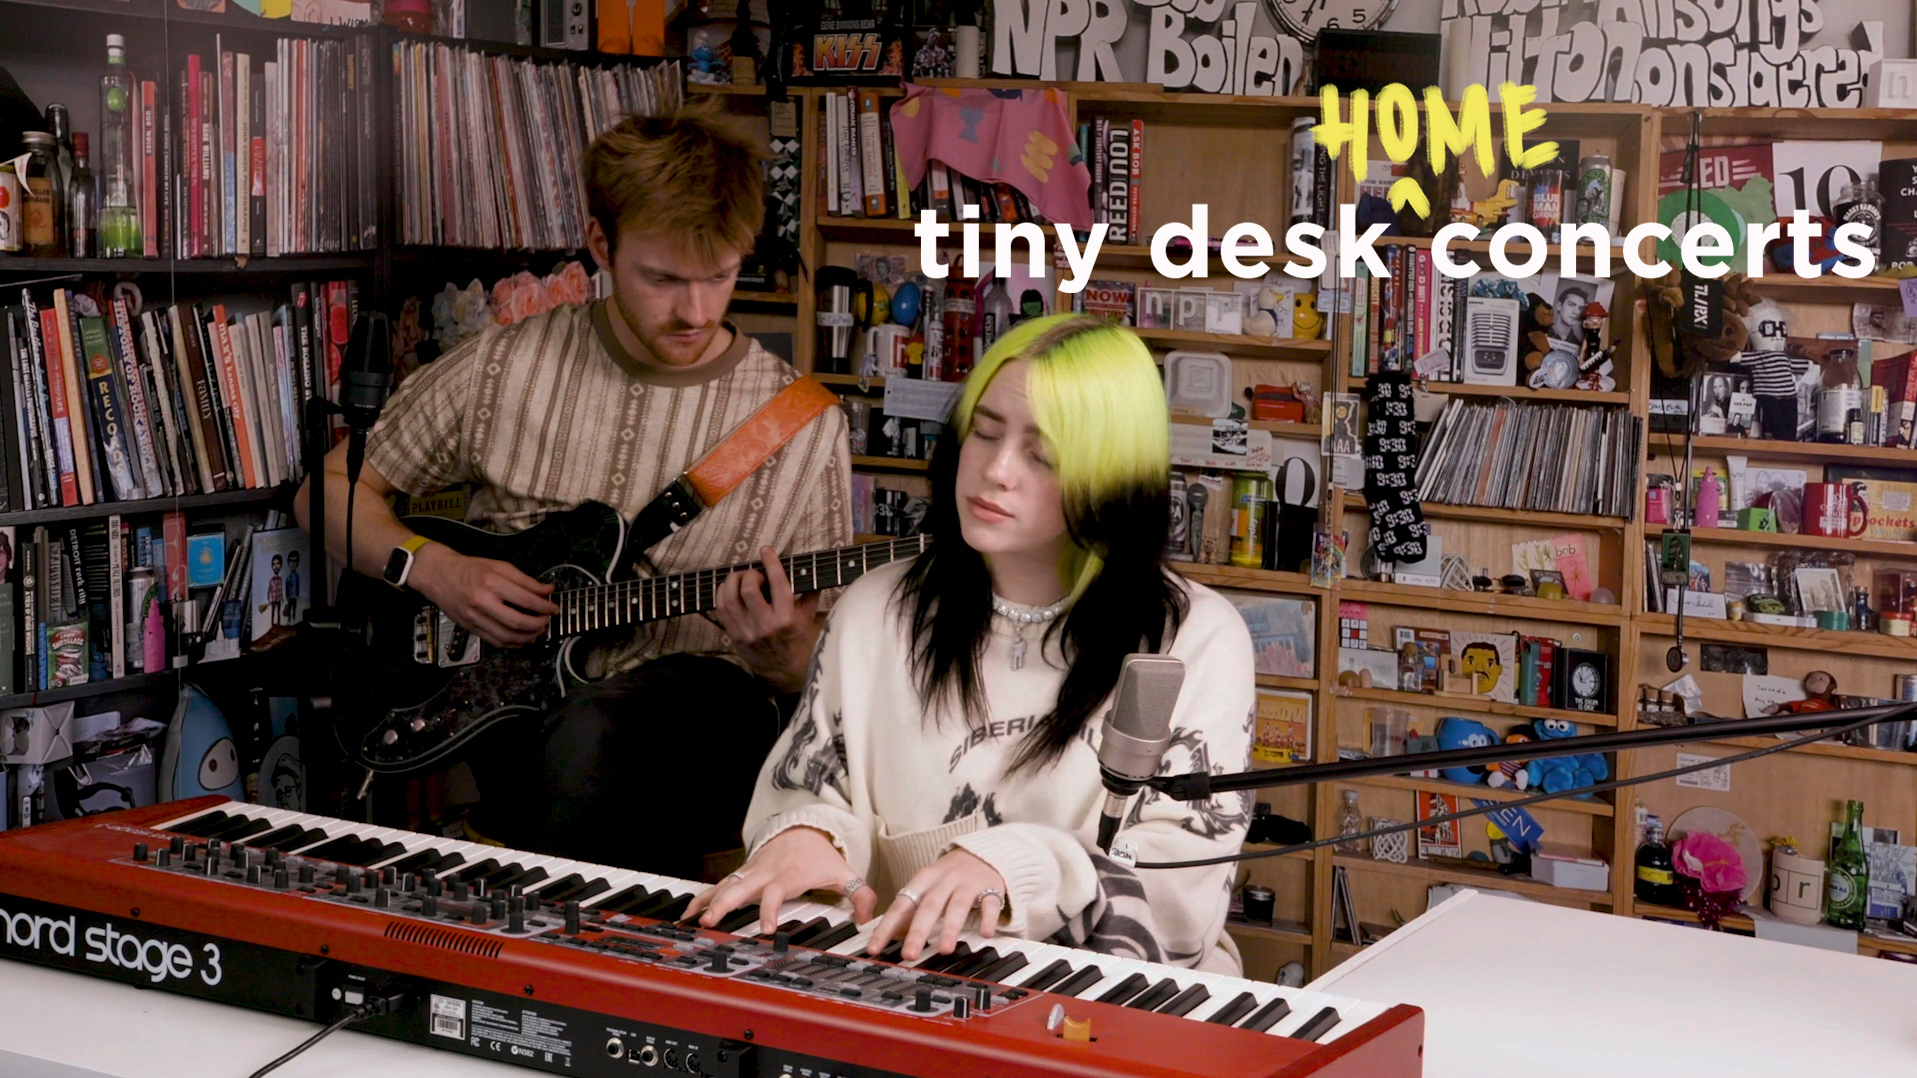 Billie Eilish and Finneas pull off an NPR 'Tiny Desk Concert' from home